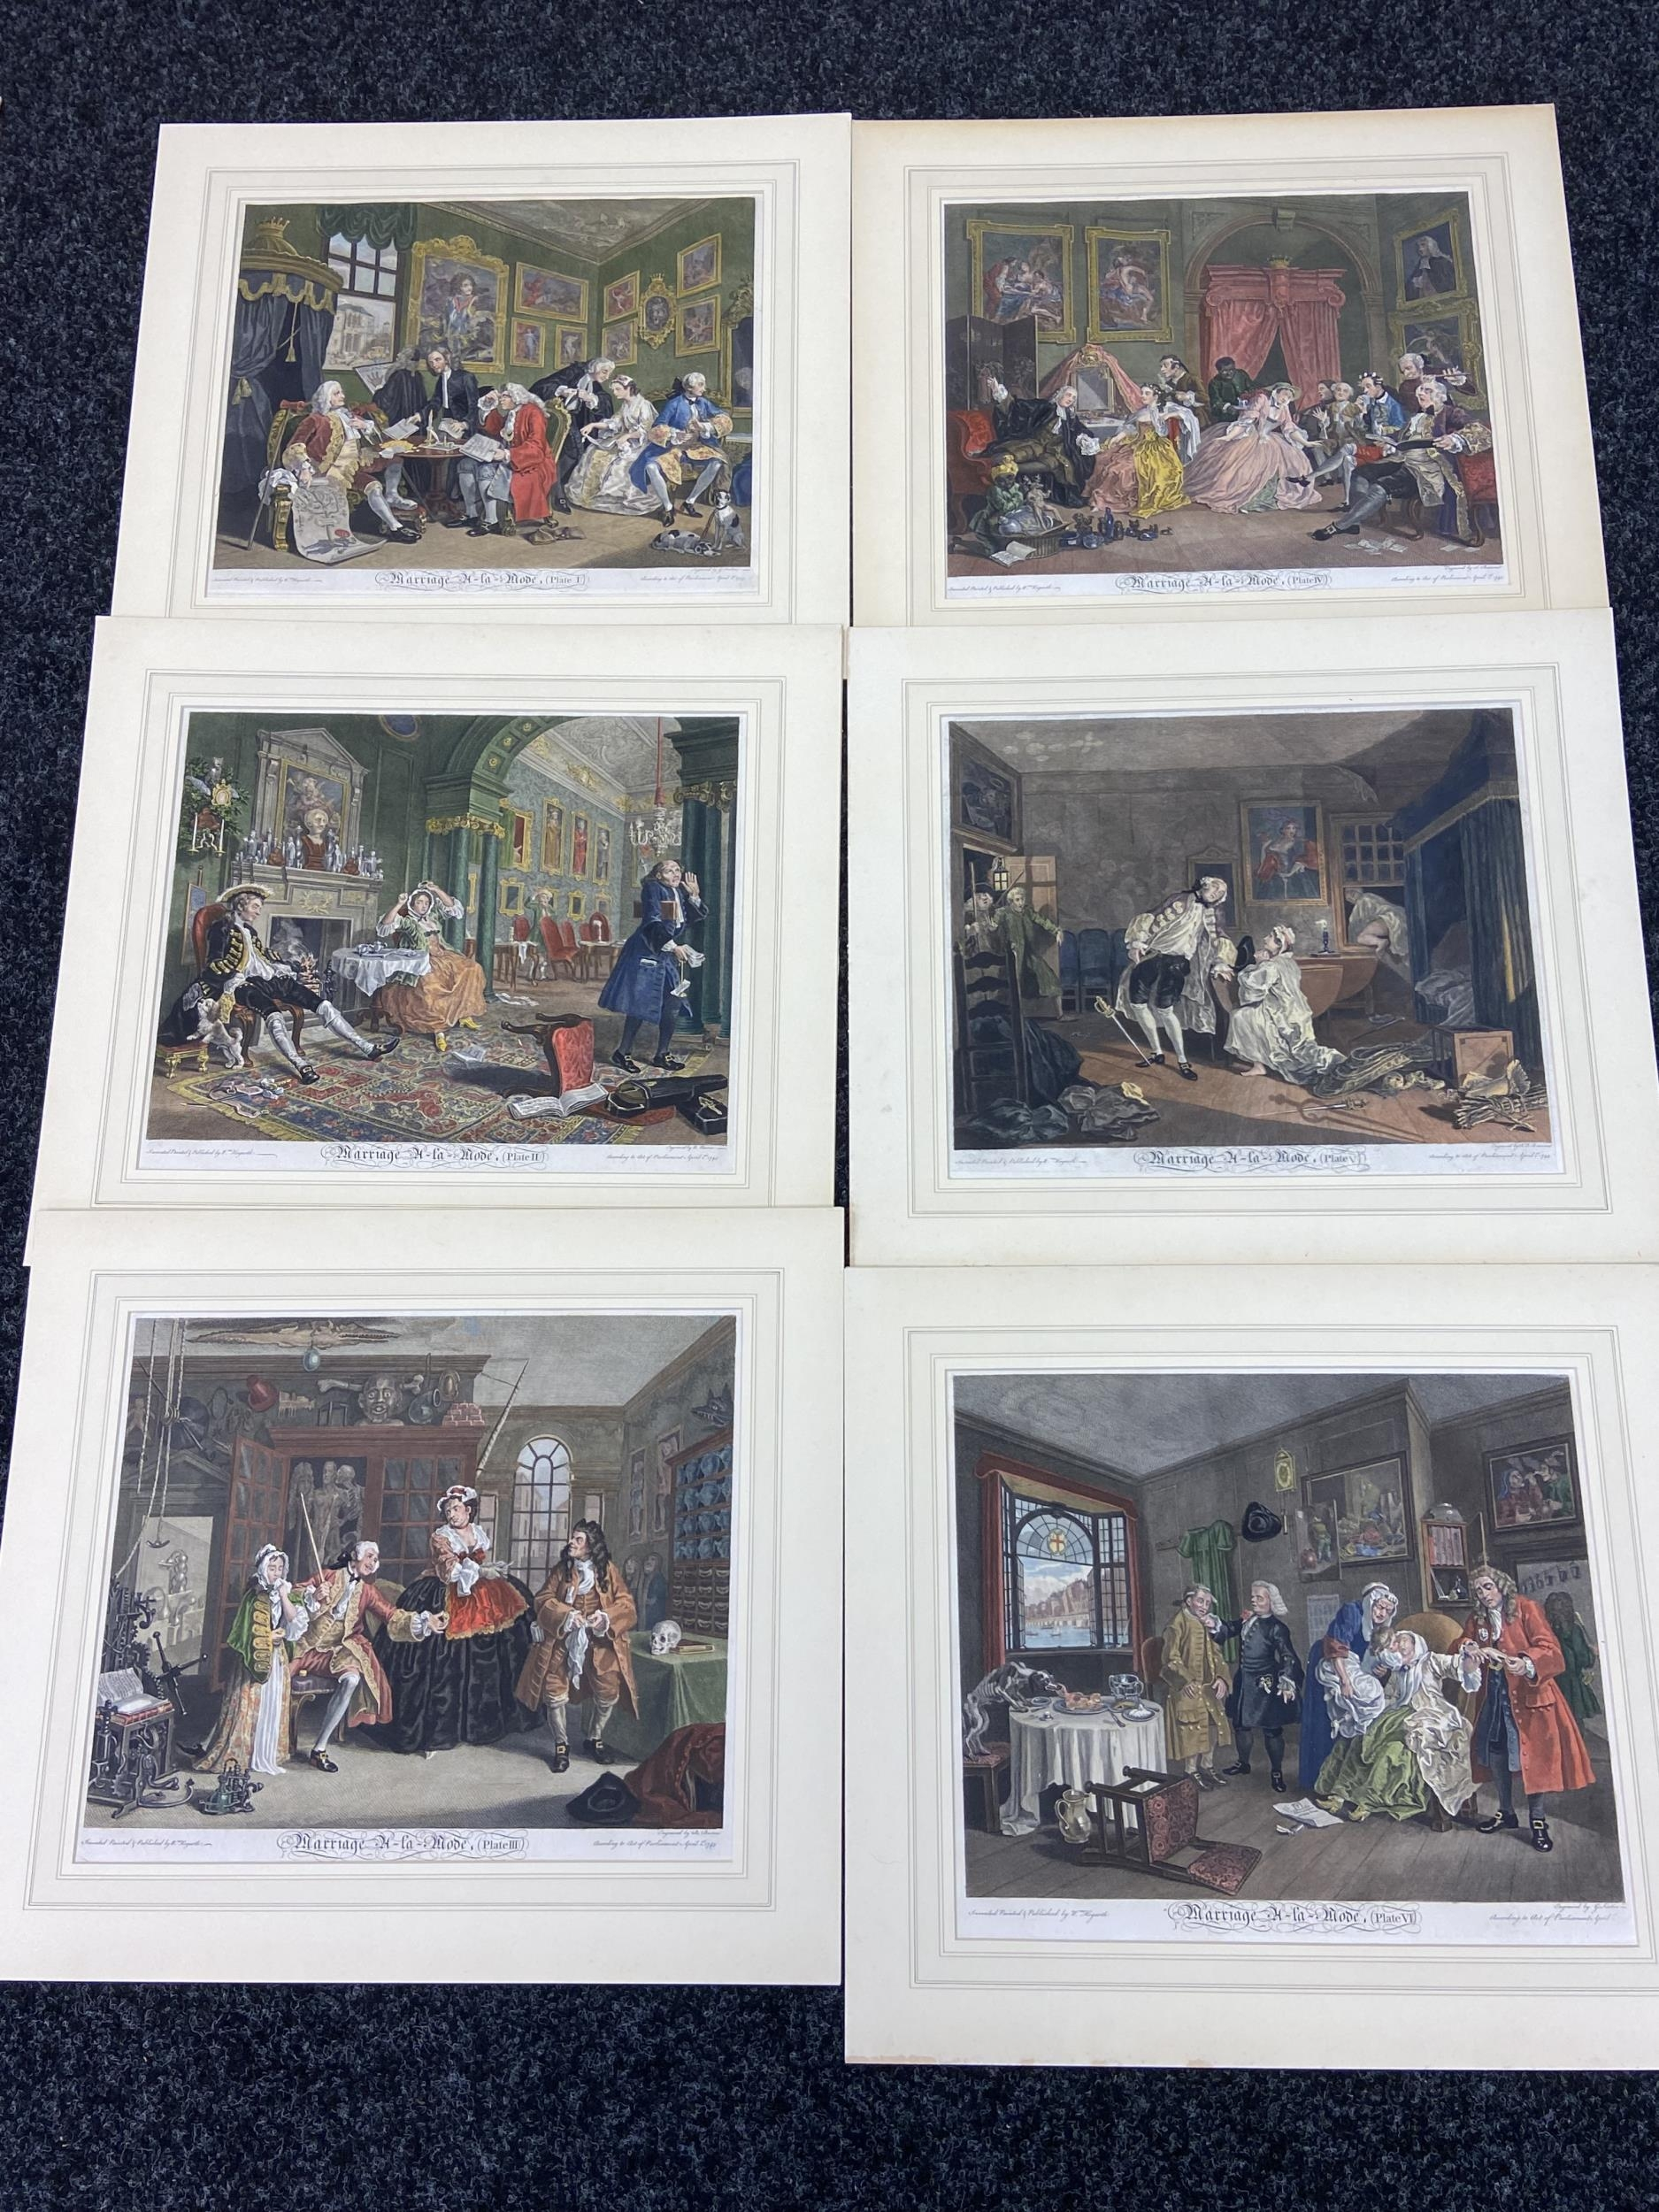 A Set of 6 18th century coloured engravings titled 'Marriage A- LA Mode' Painted, engraved and